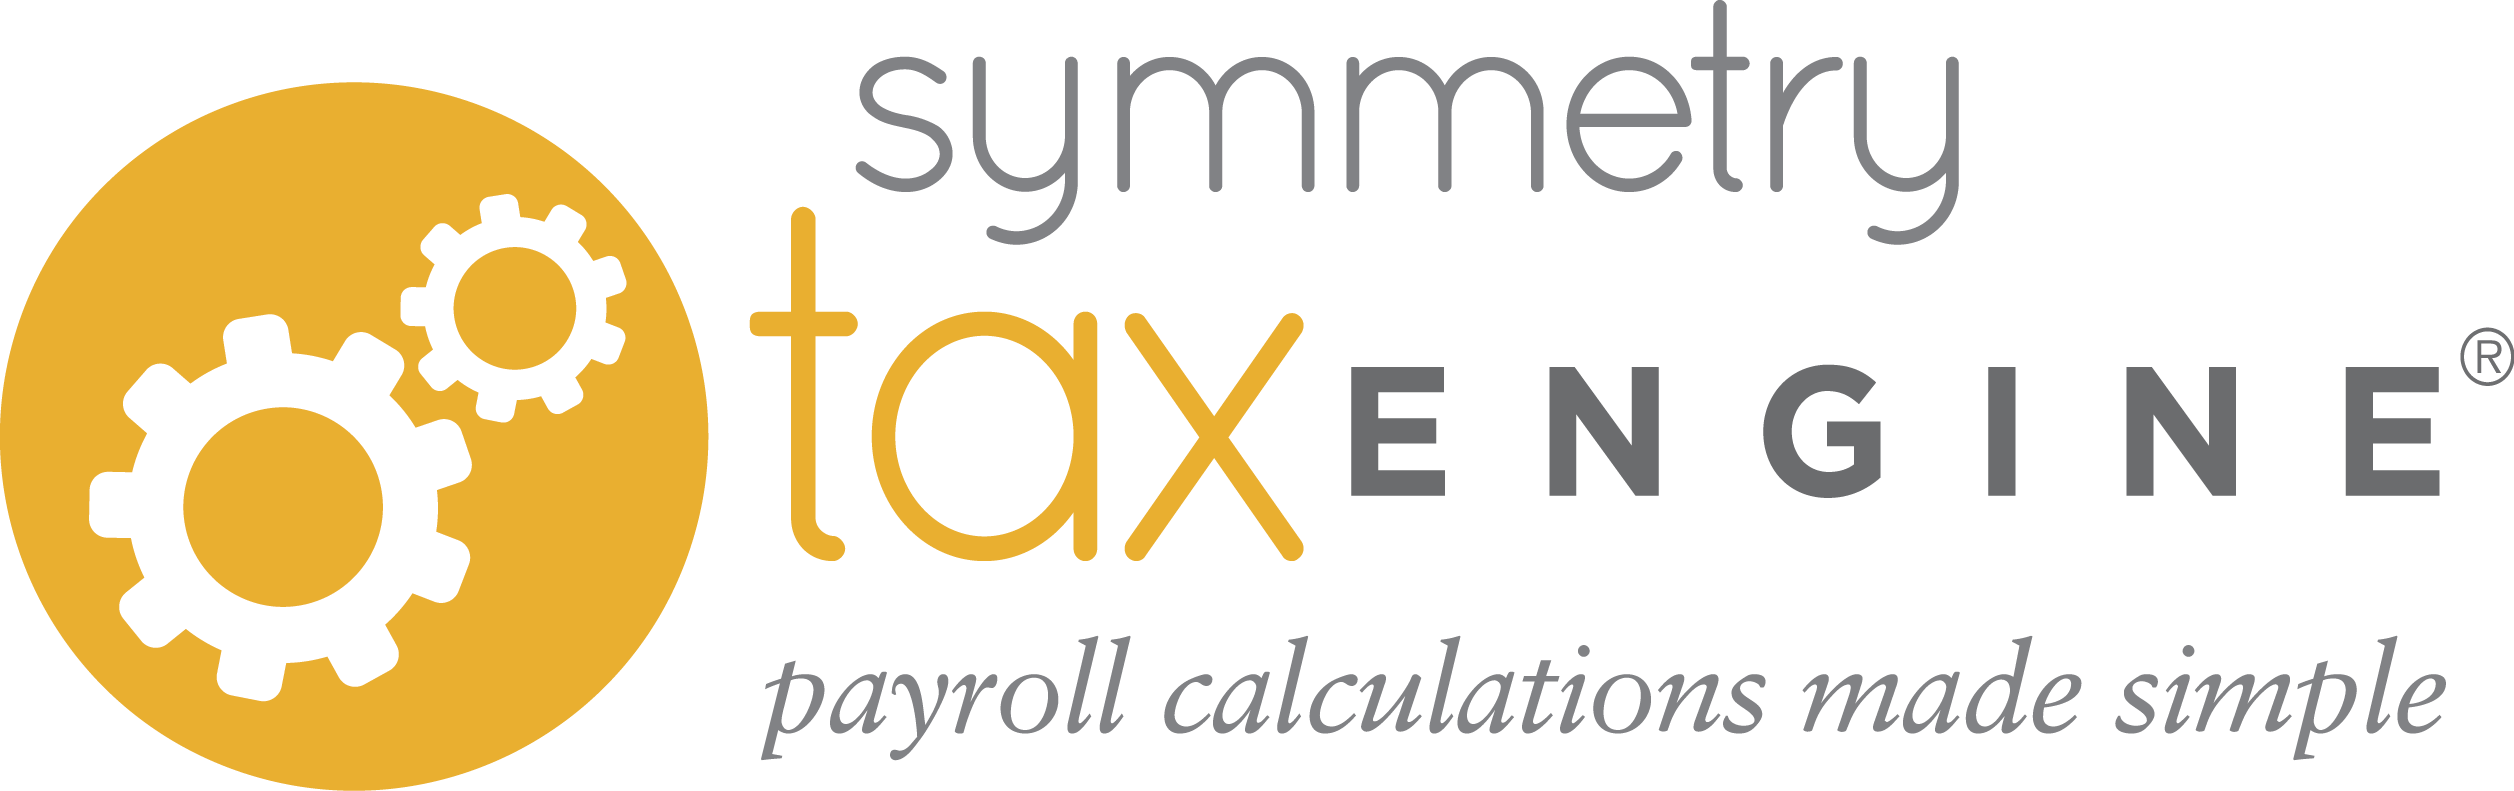 Symmetry Tax Engine, calculates payroll withholding and employer taxes